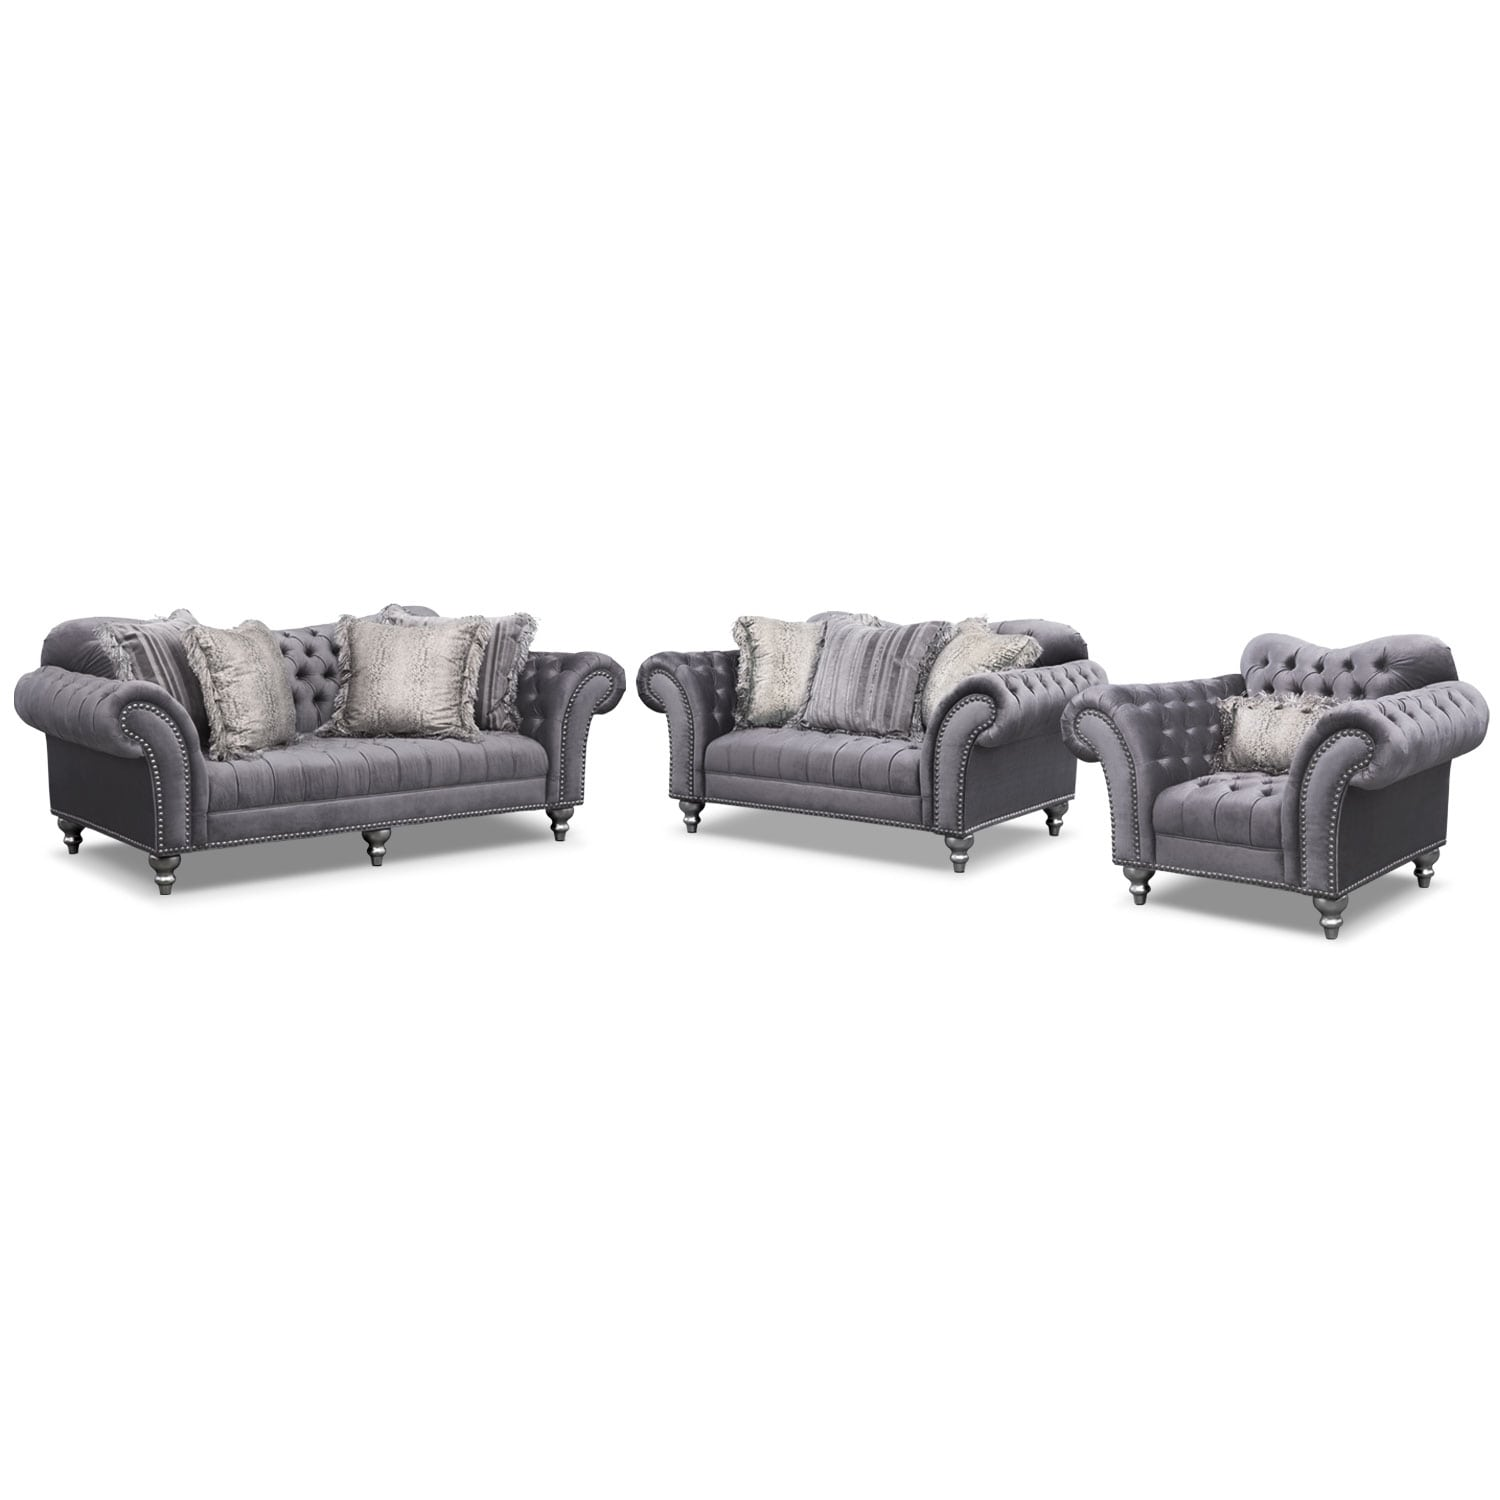 Living Room Sets Value City Furniture the brittney living room collection - gray | value city furniture